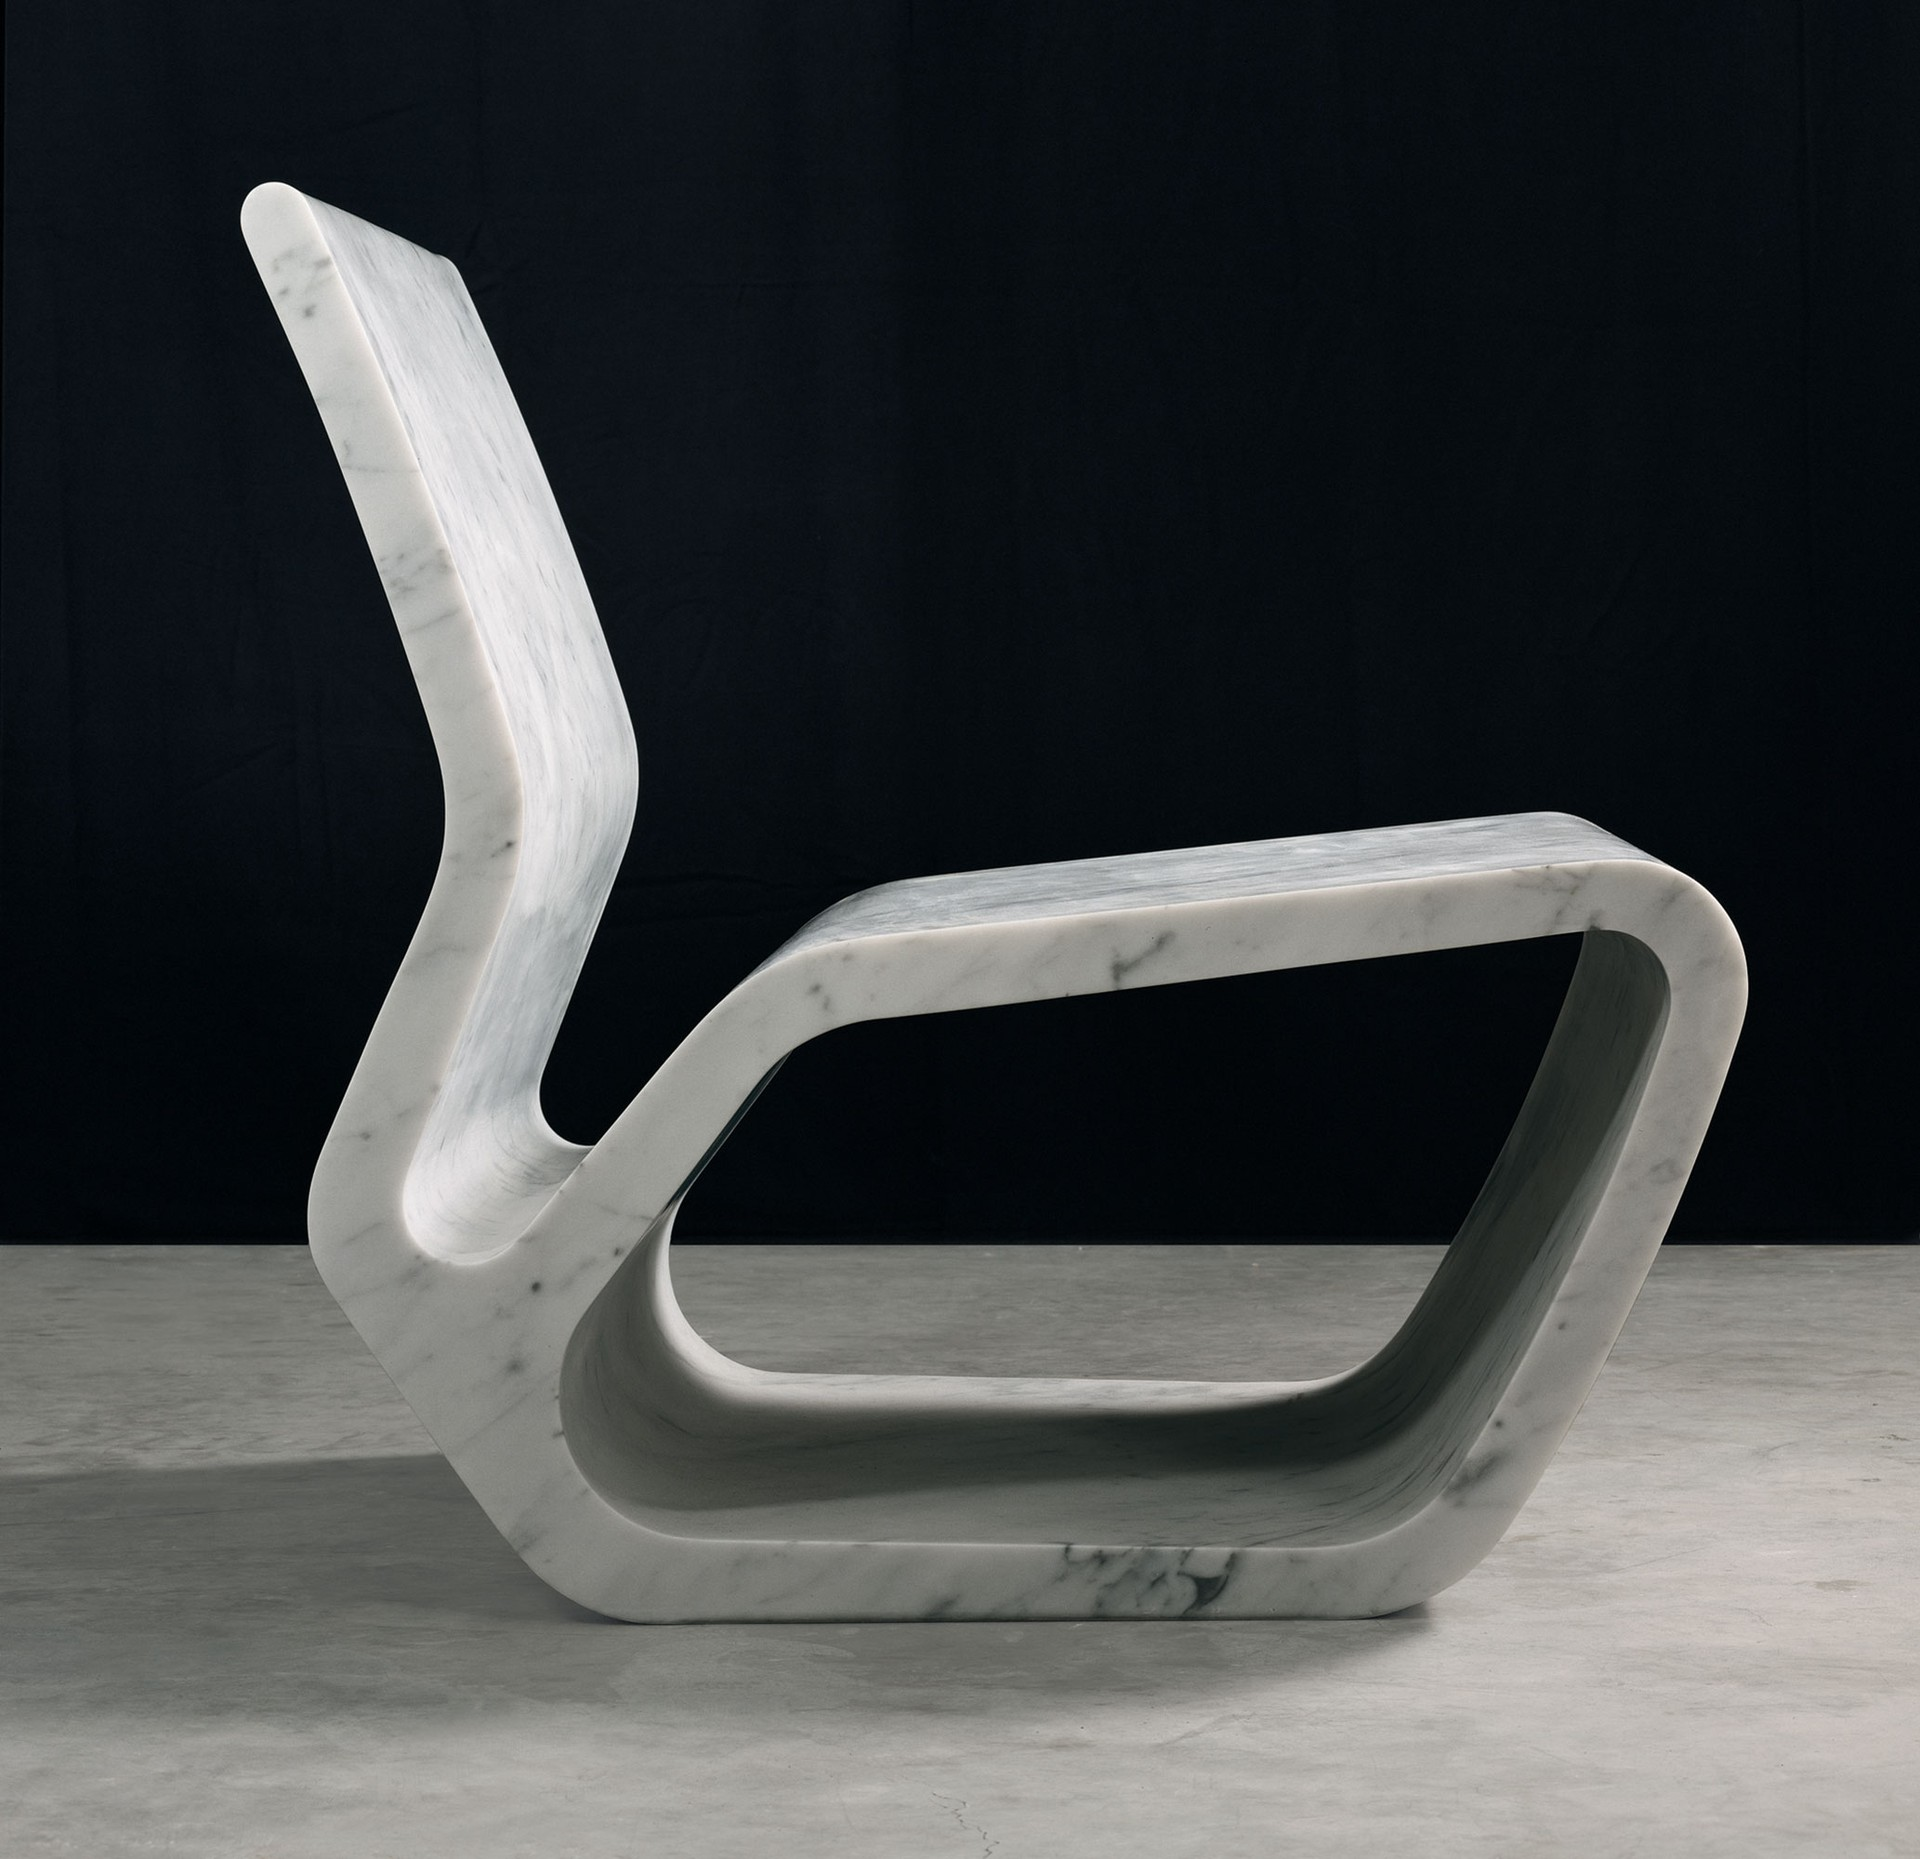 Amazing Extruded Chair